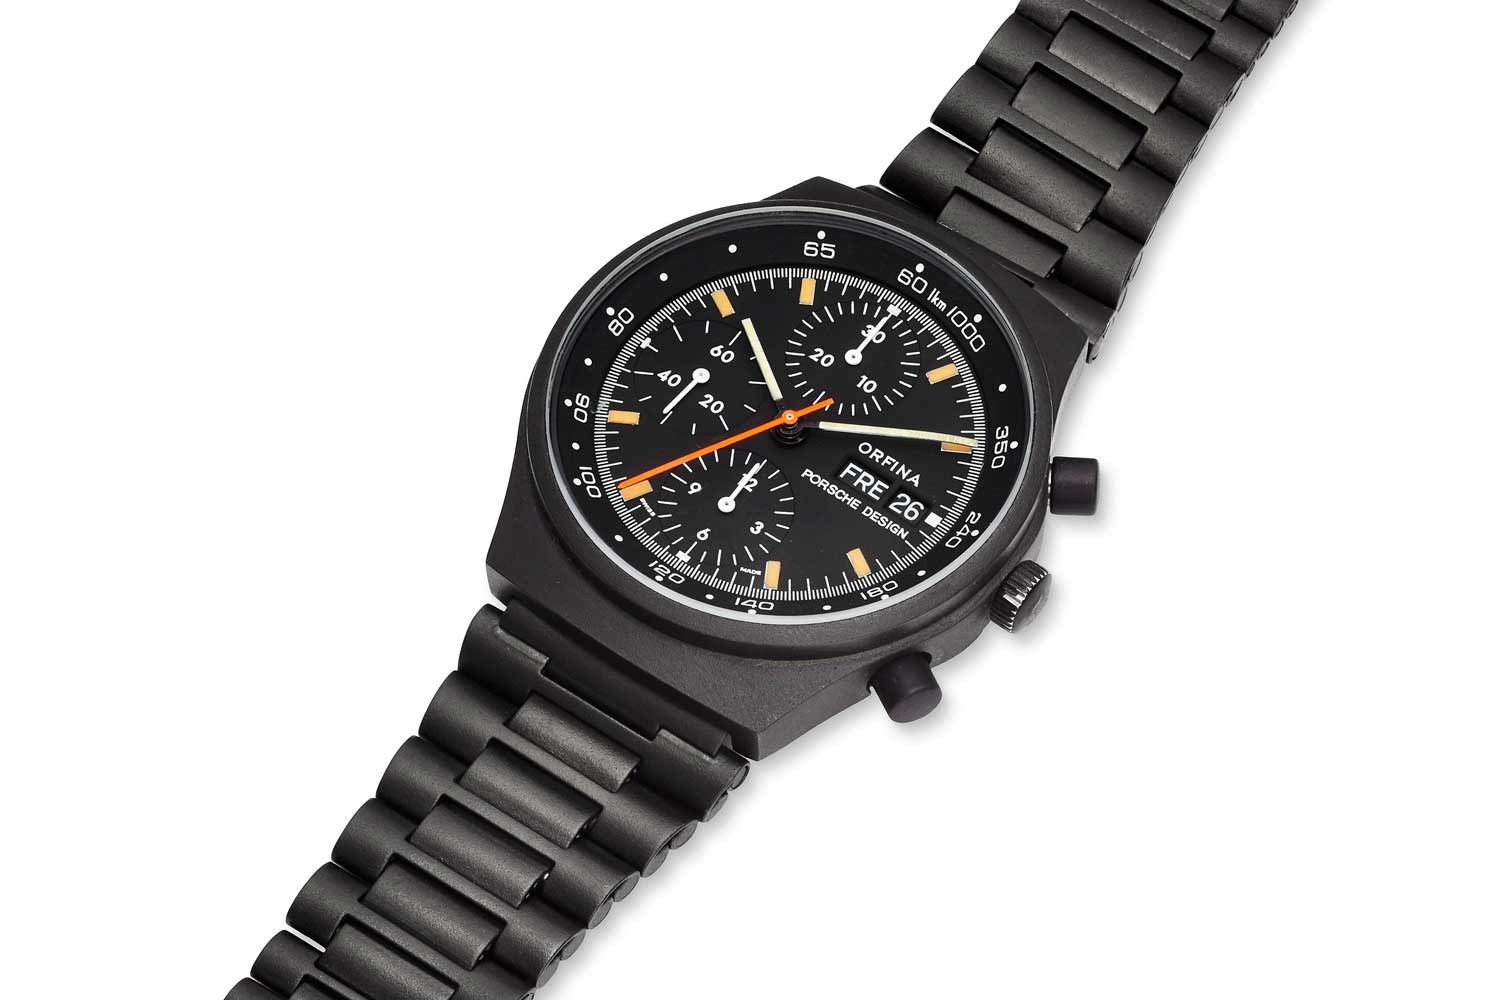 Orfina chronograph by Porsche Design driven by the 7750 (Image: Christie's)